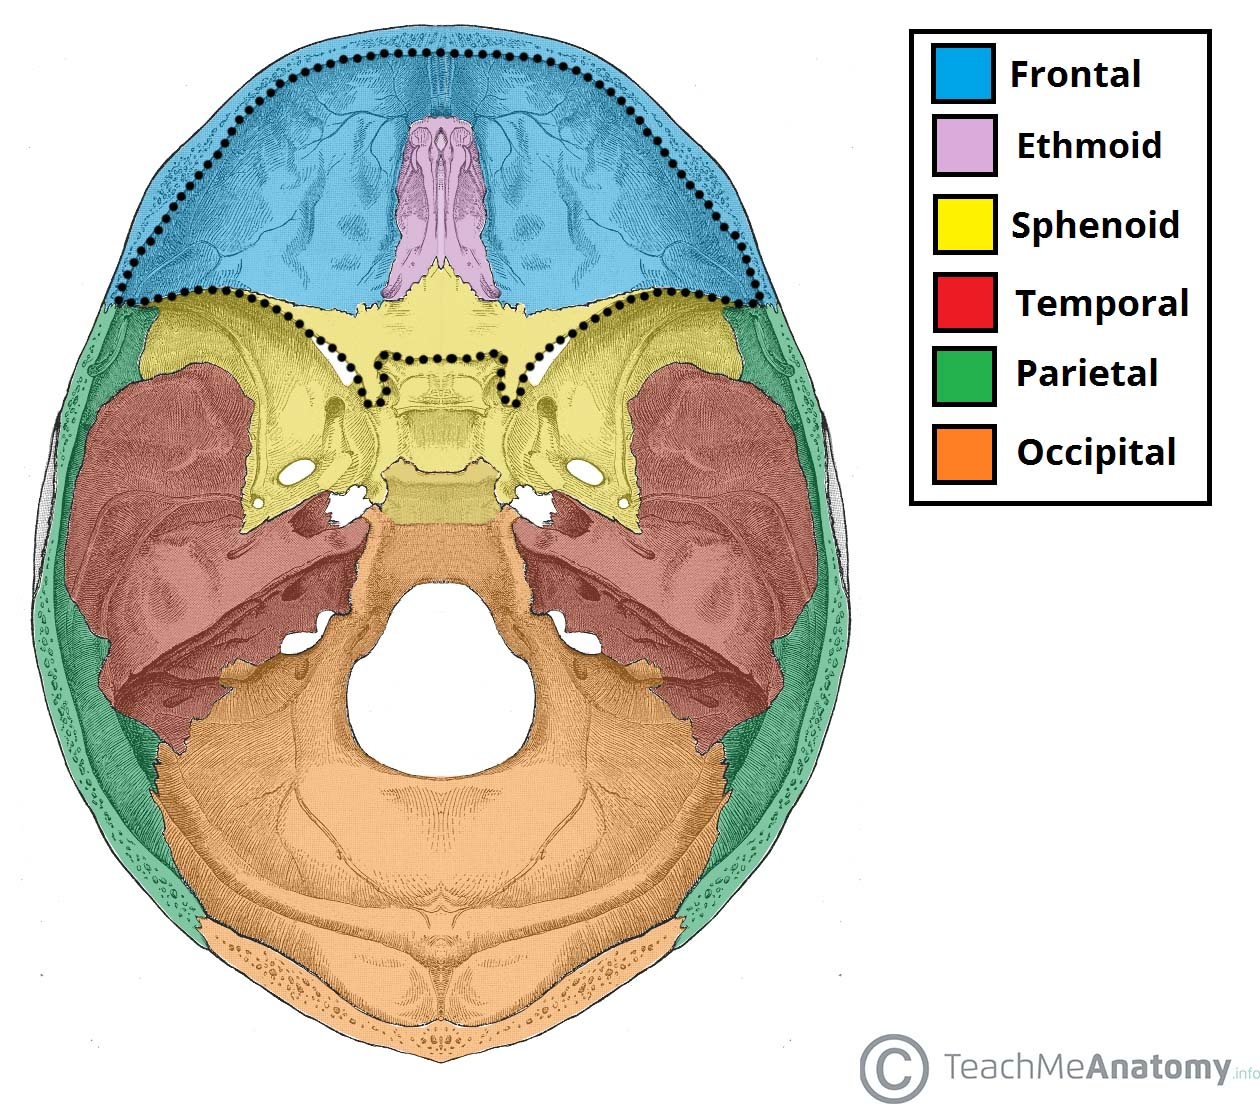 Fig 1.0 - The bones of the base of the skull. The anterior cranial fossa has been outlined.